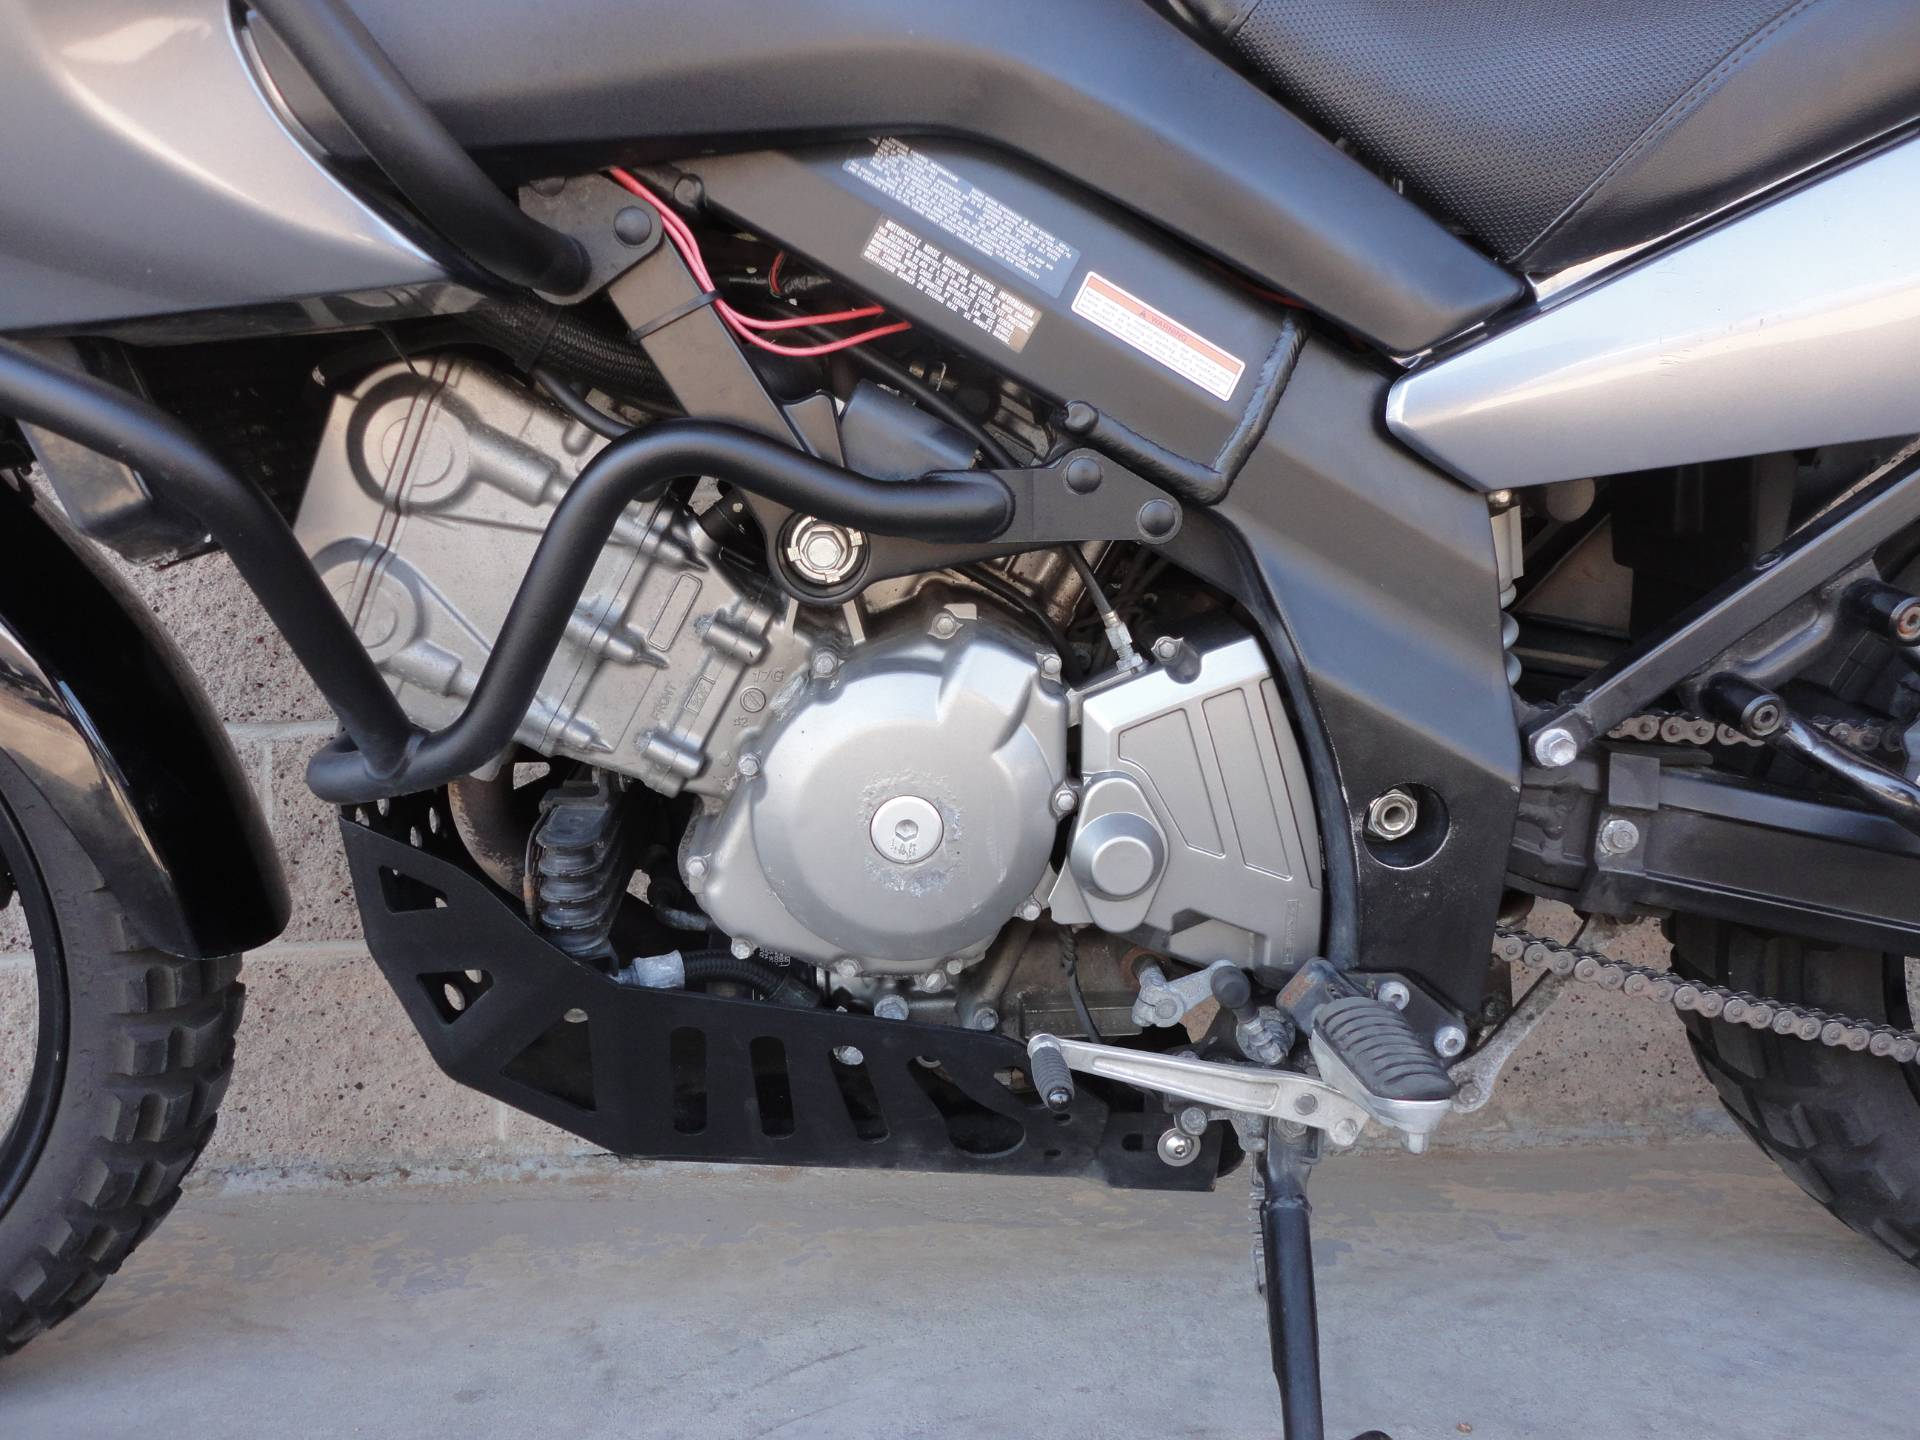 2007 Suzuki V-Strom® 650 in Denver, Colorado - Photo 5